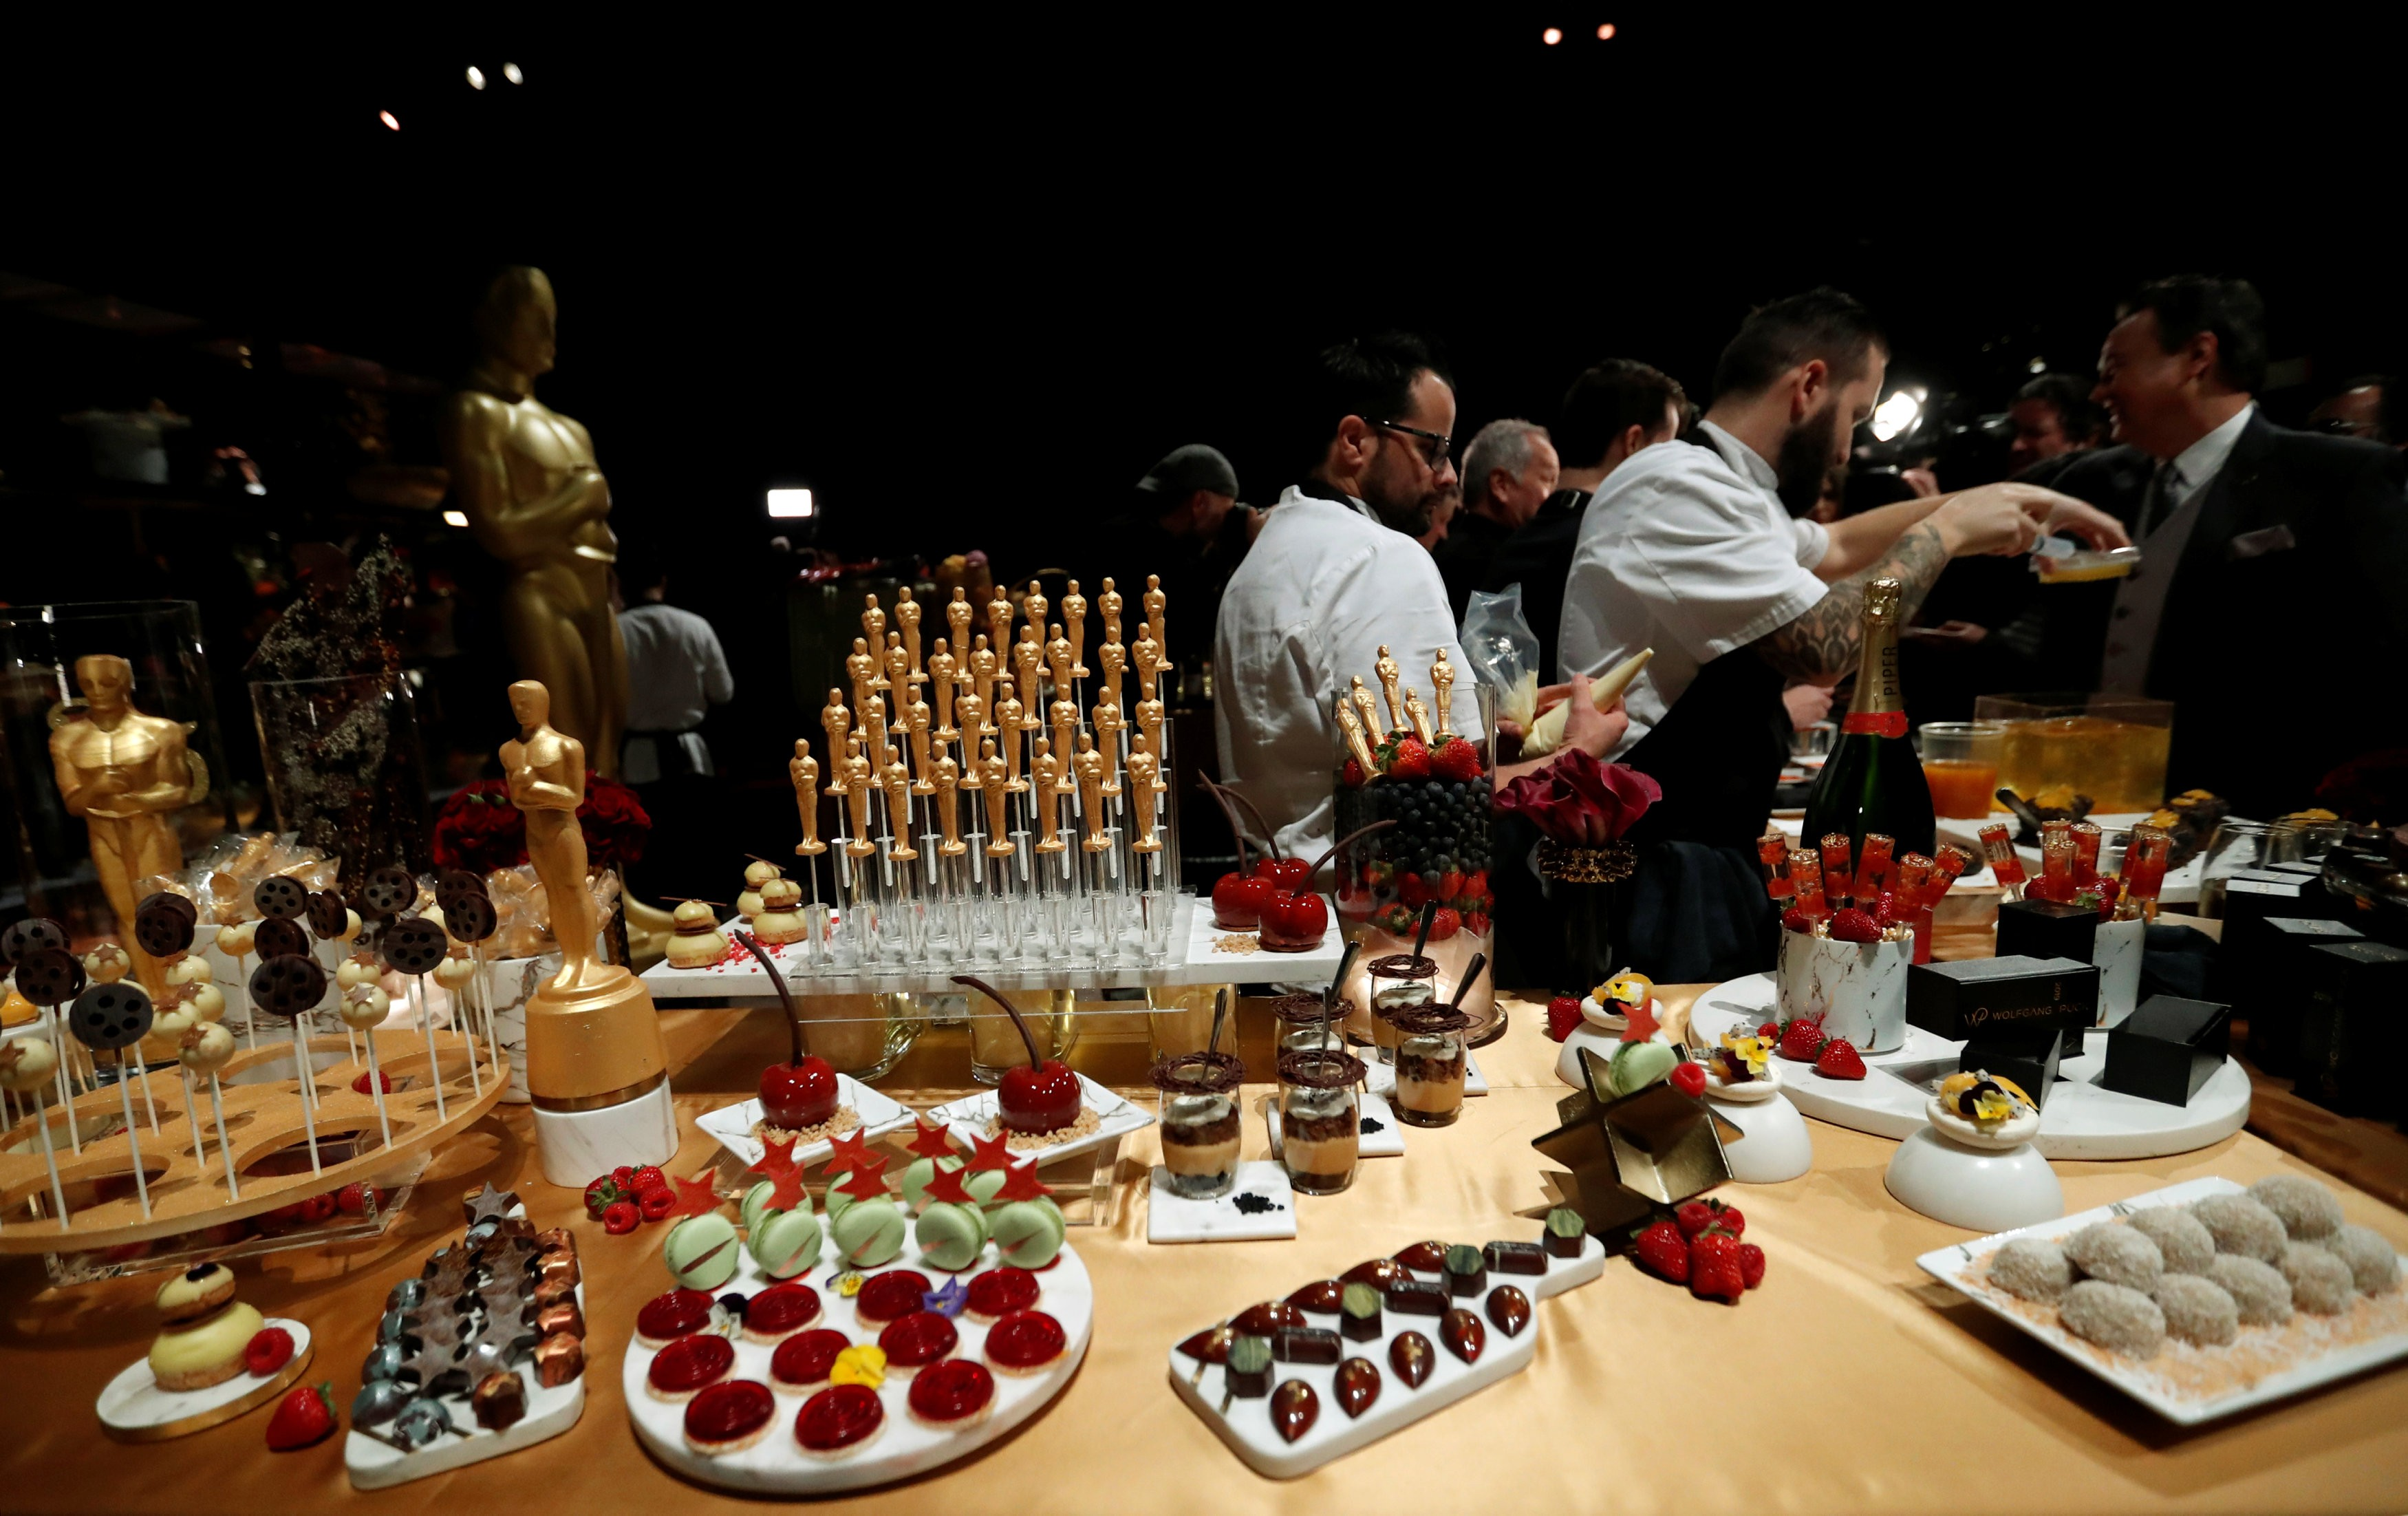 Oscars after-party – what's on the menu for the Hollywood